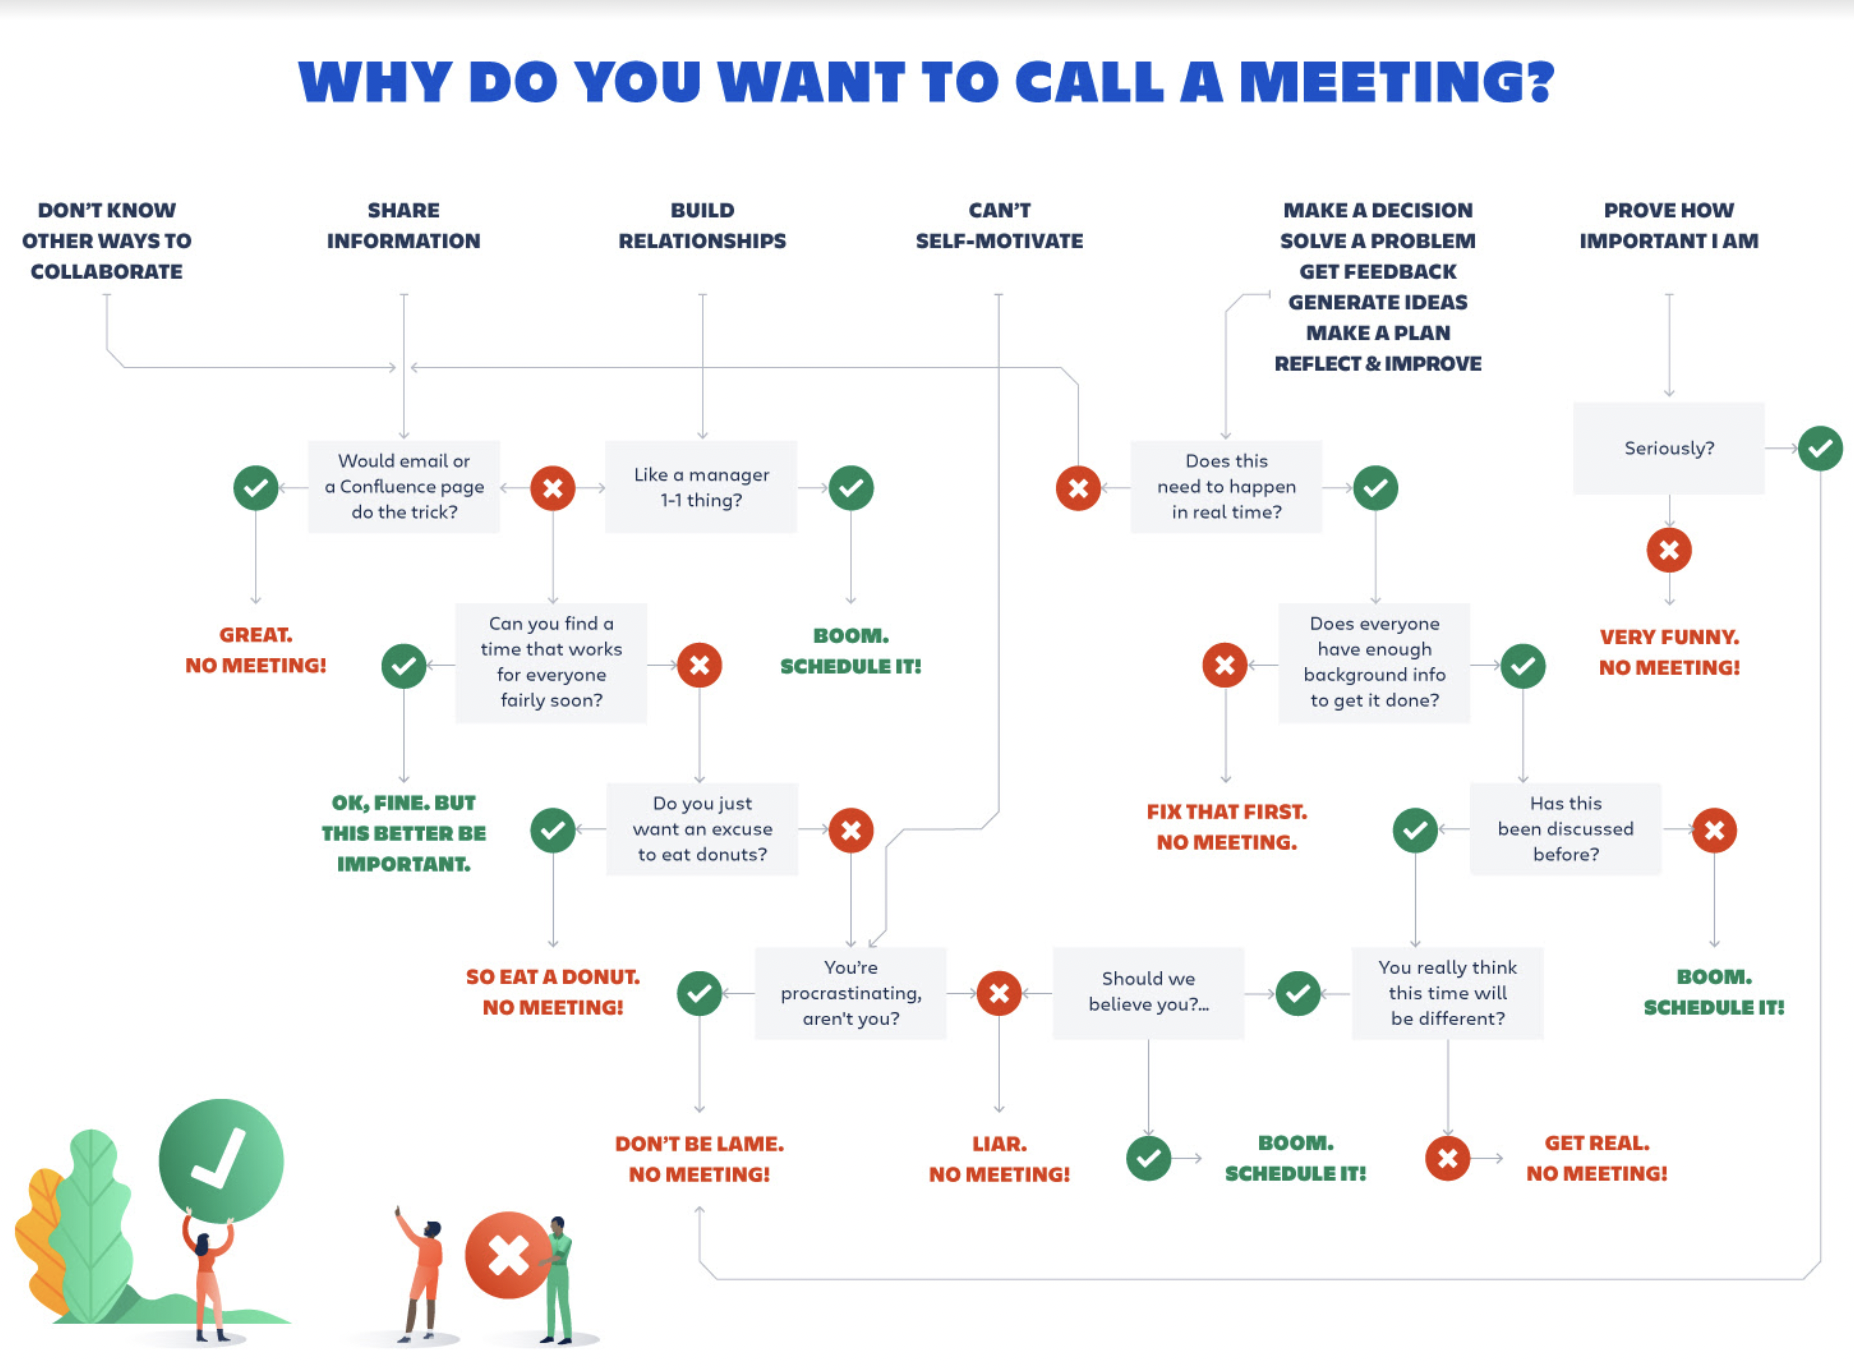 Why do you want to call a meeting